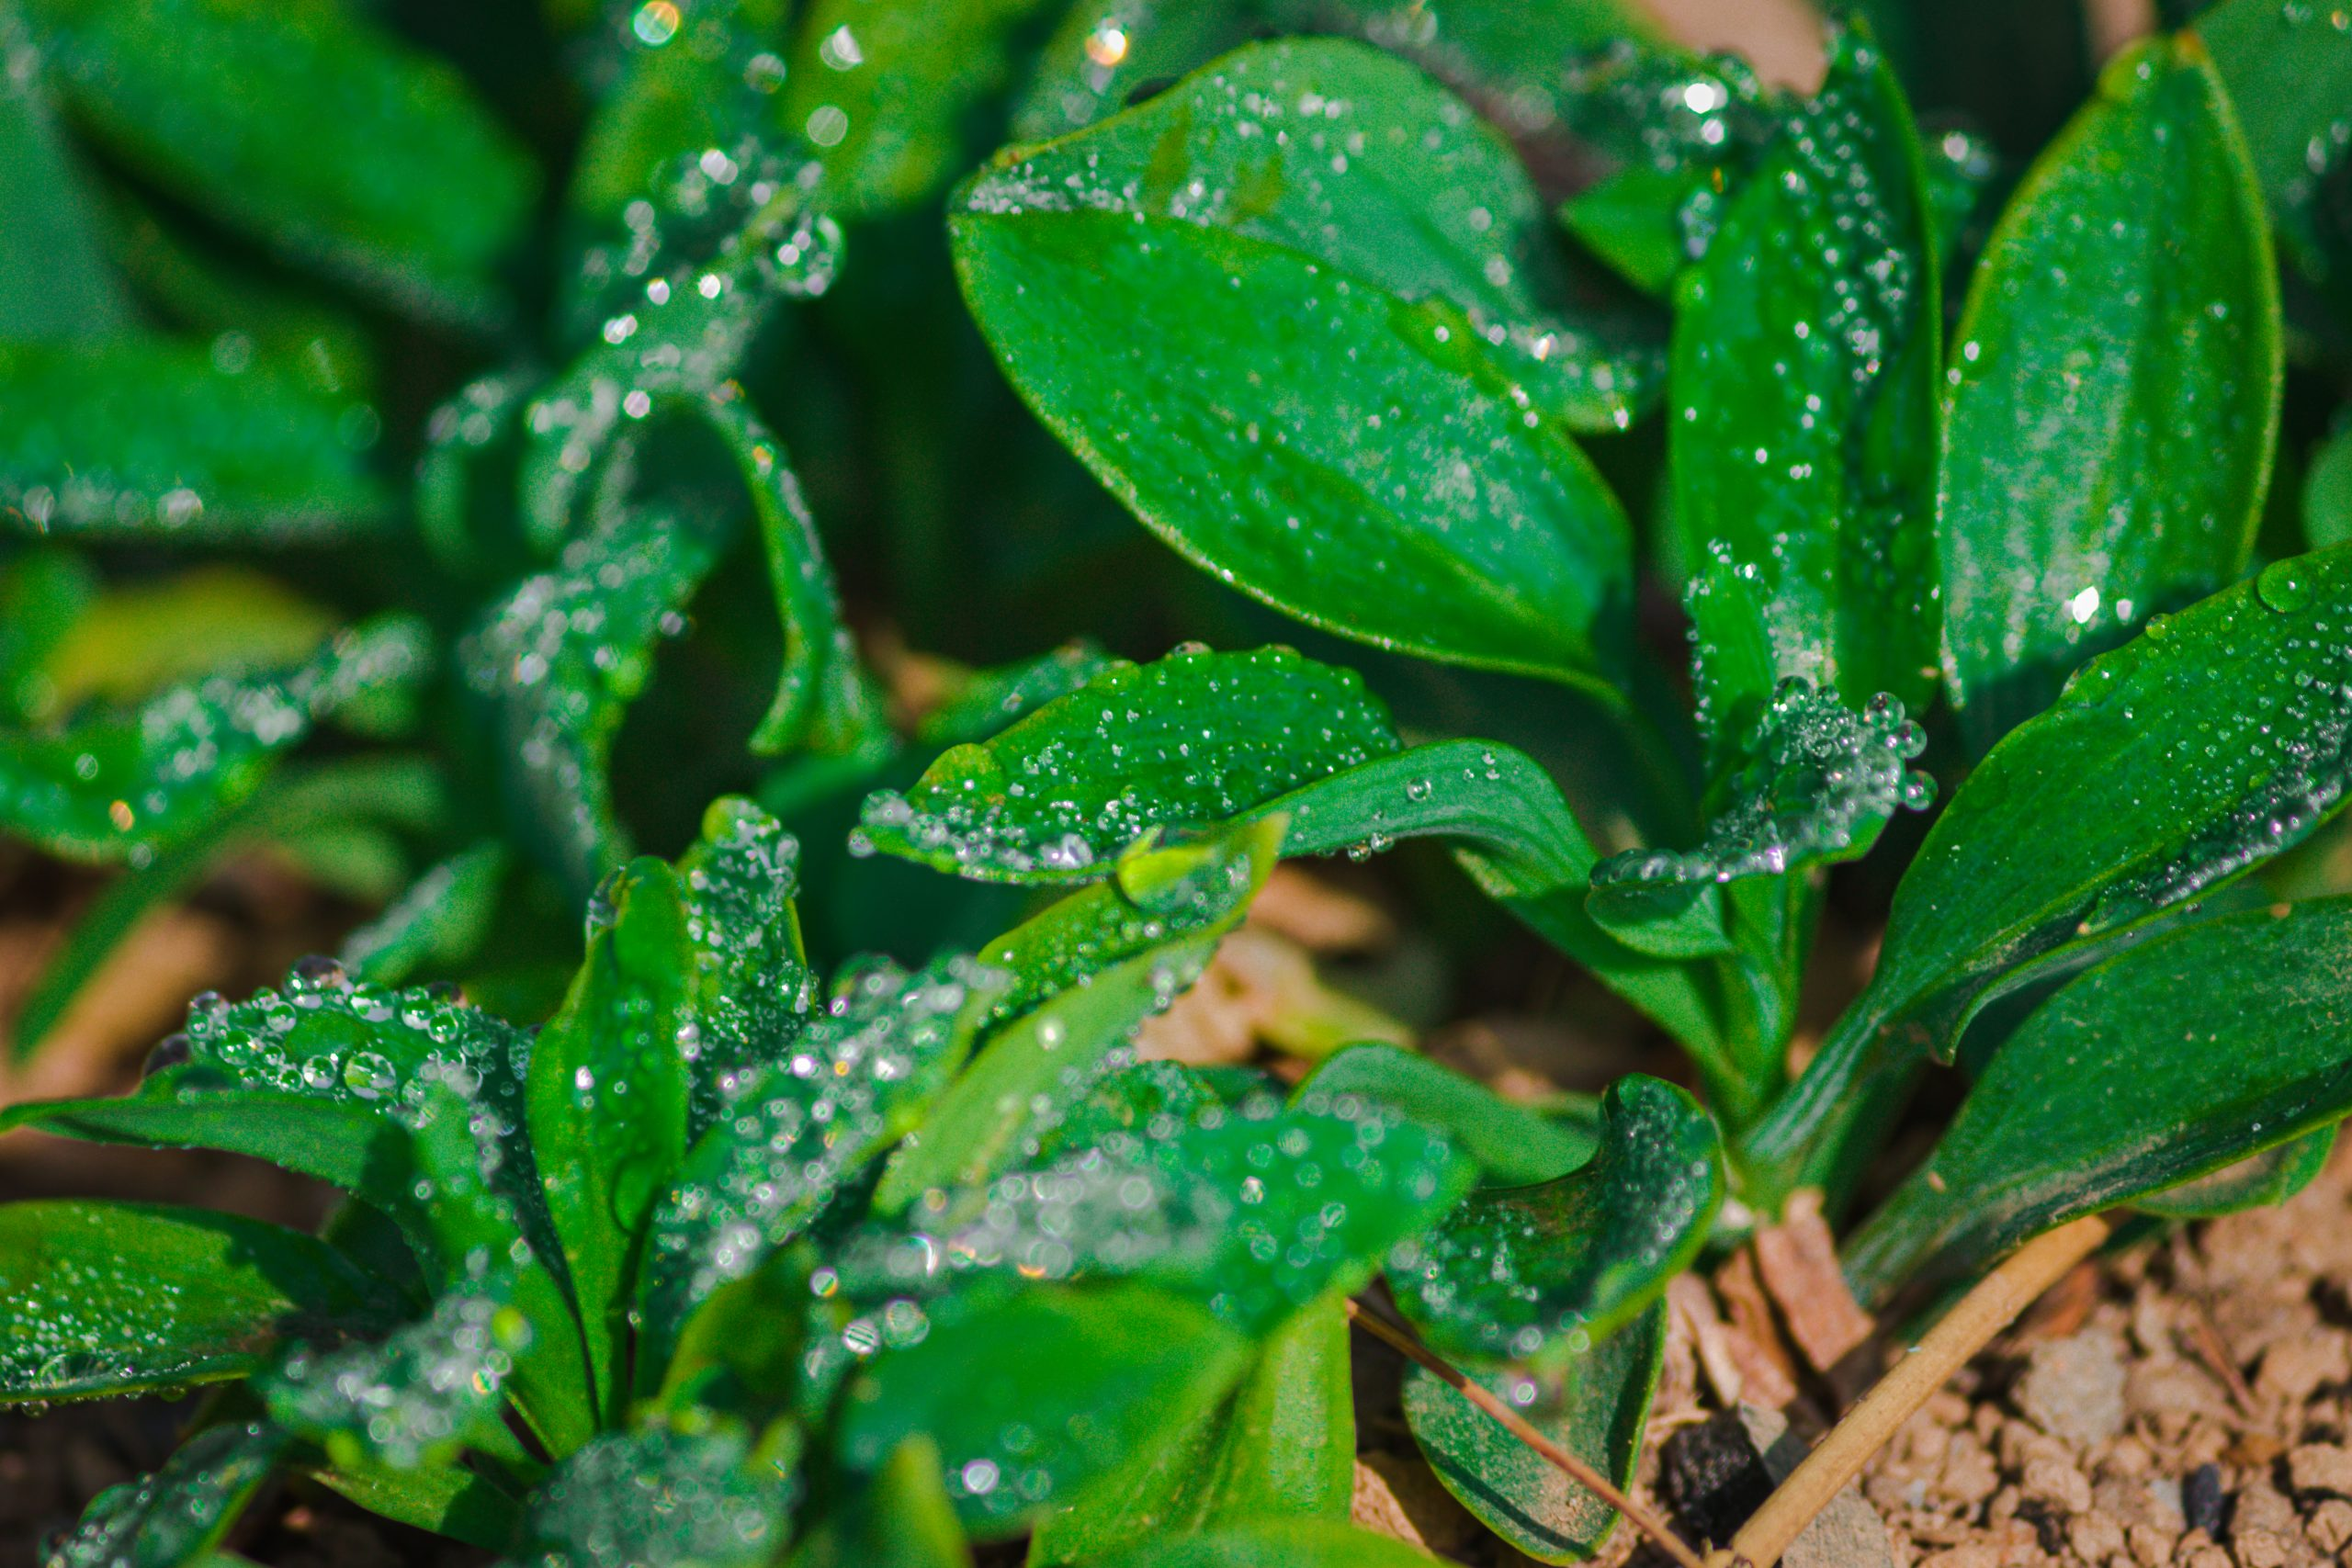 Dew drops on plant leaves